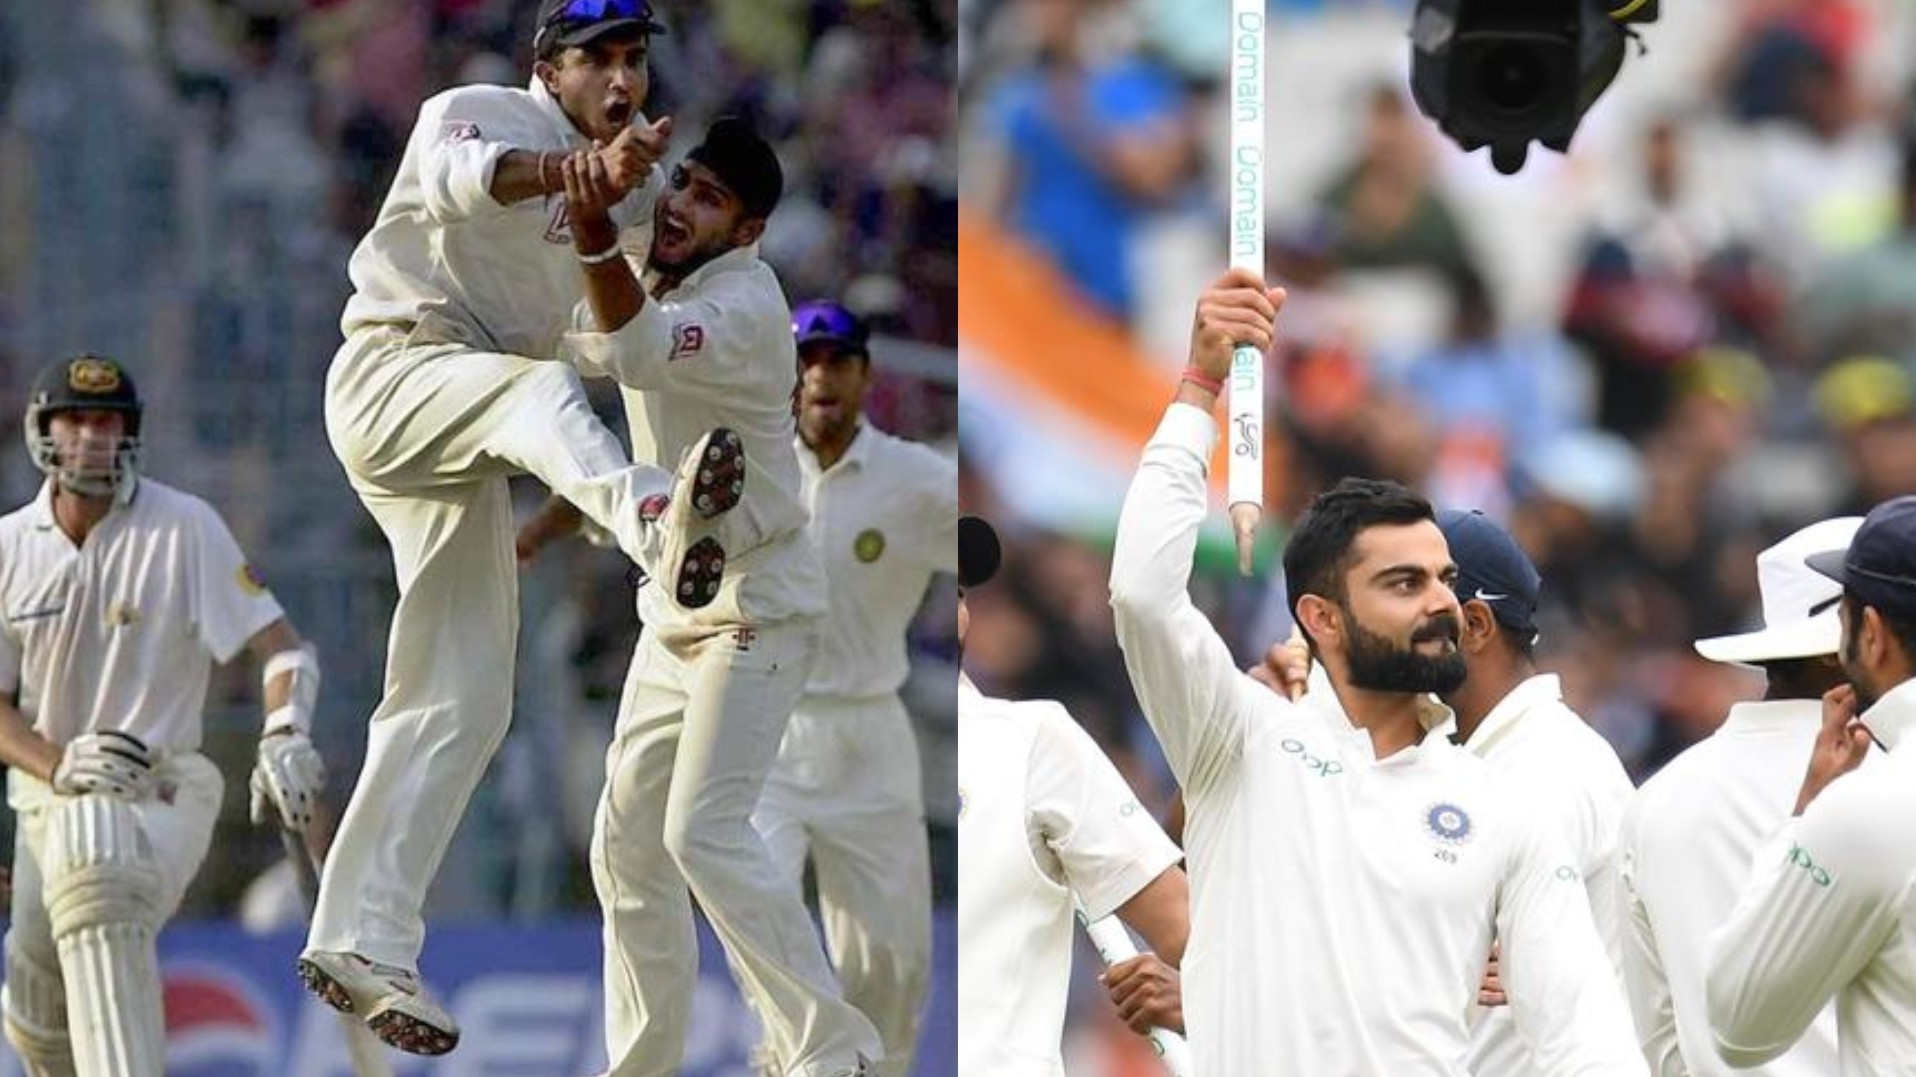 Best combined India Test XI from Sourav Ganguly and Virat Kohli captaincy eras